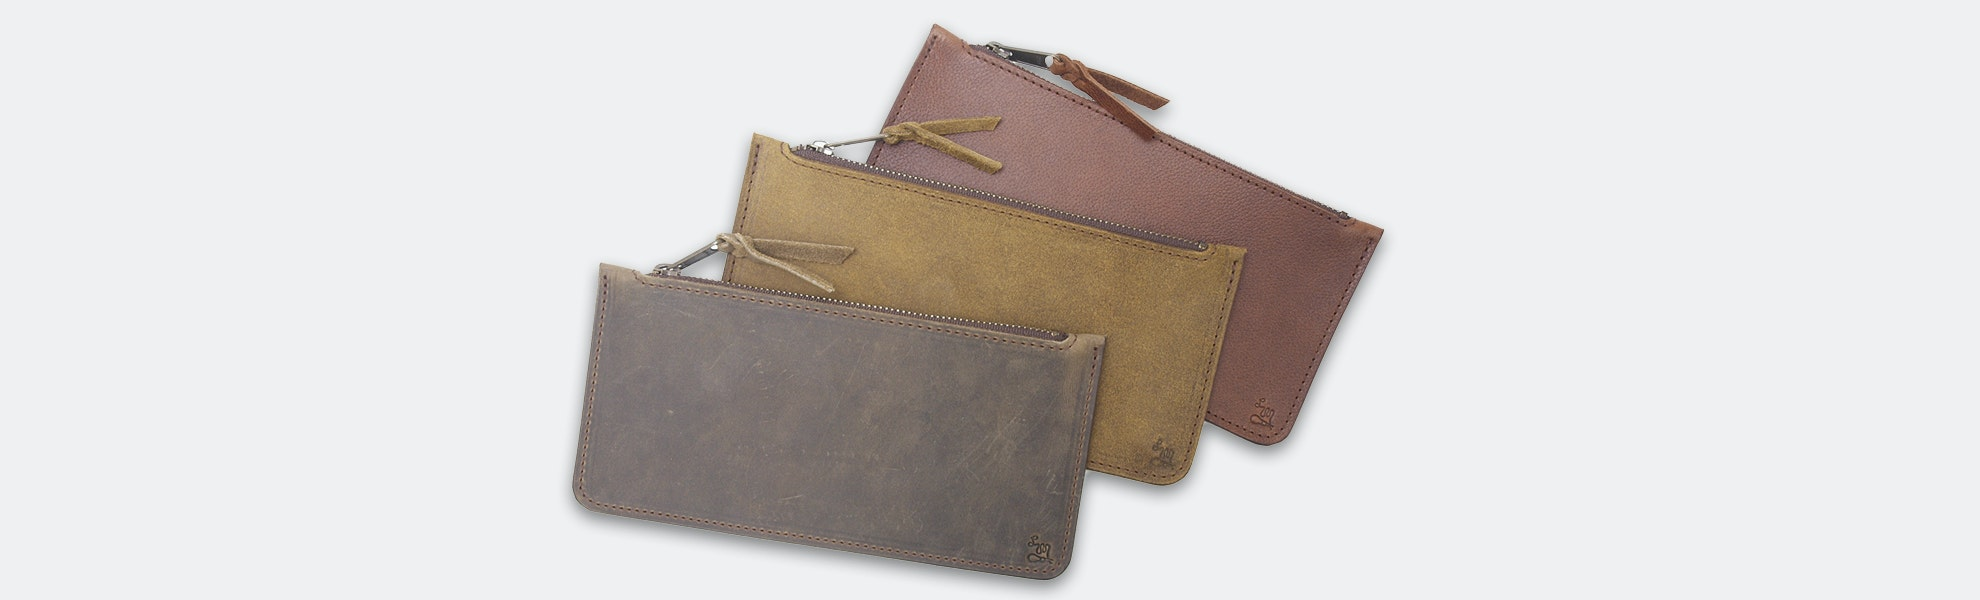 LM Products Leather Utility Pouches